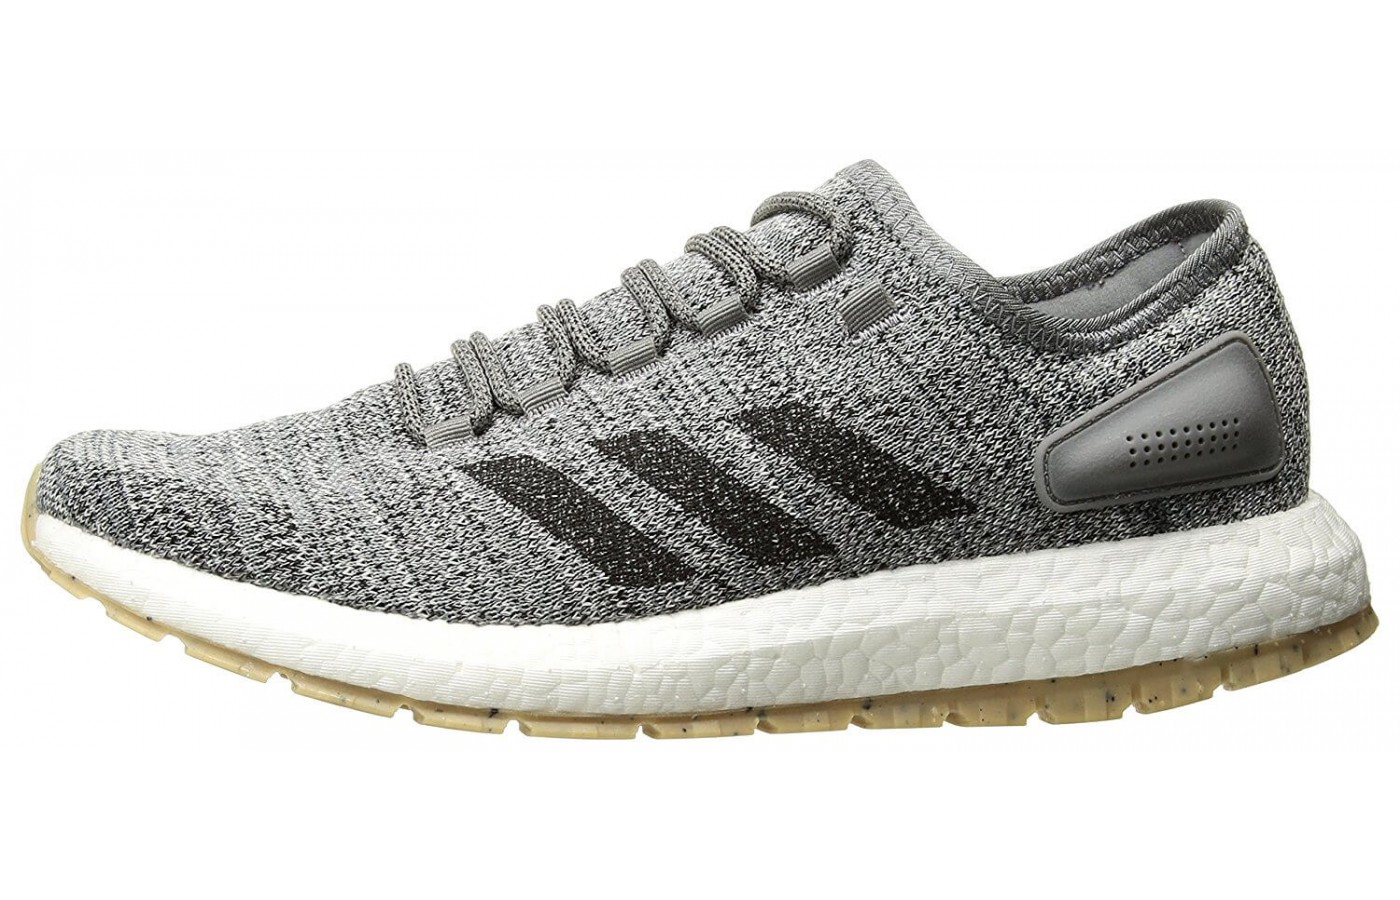 The lateral side of the Adidas Pureboost All-Terrain.